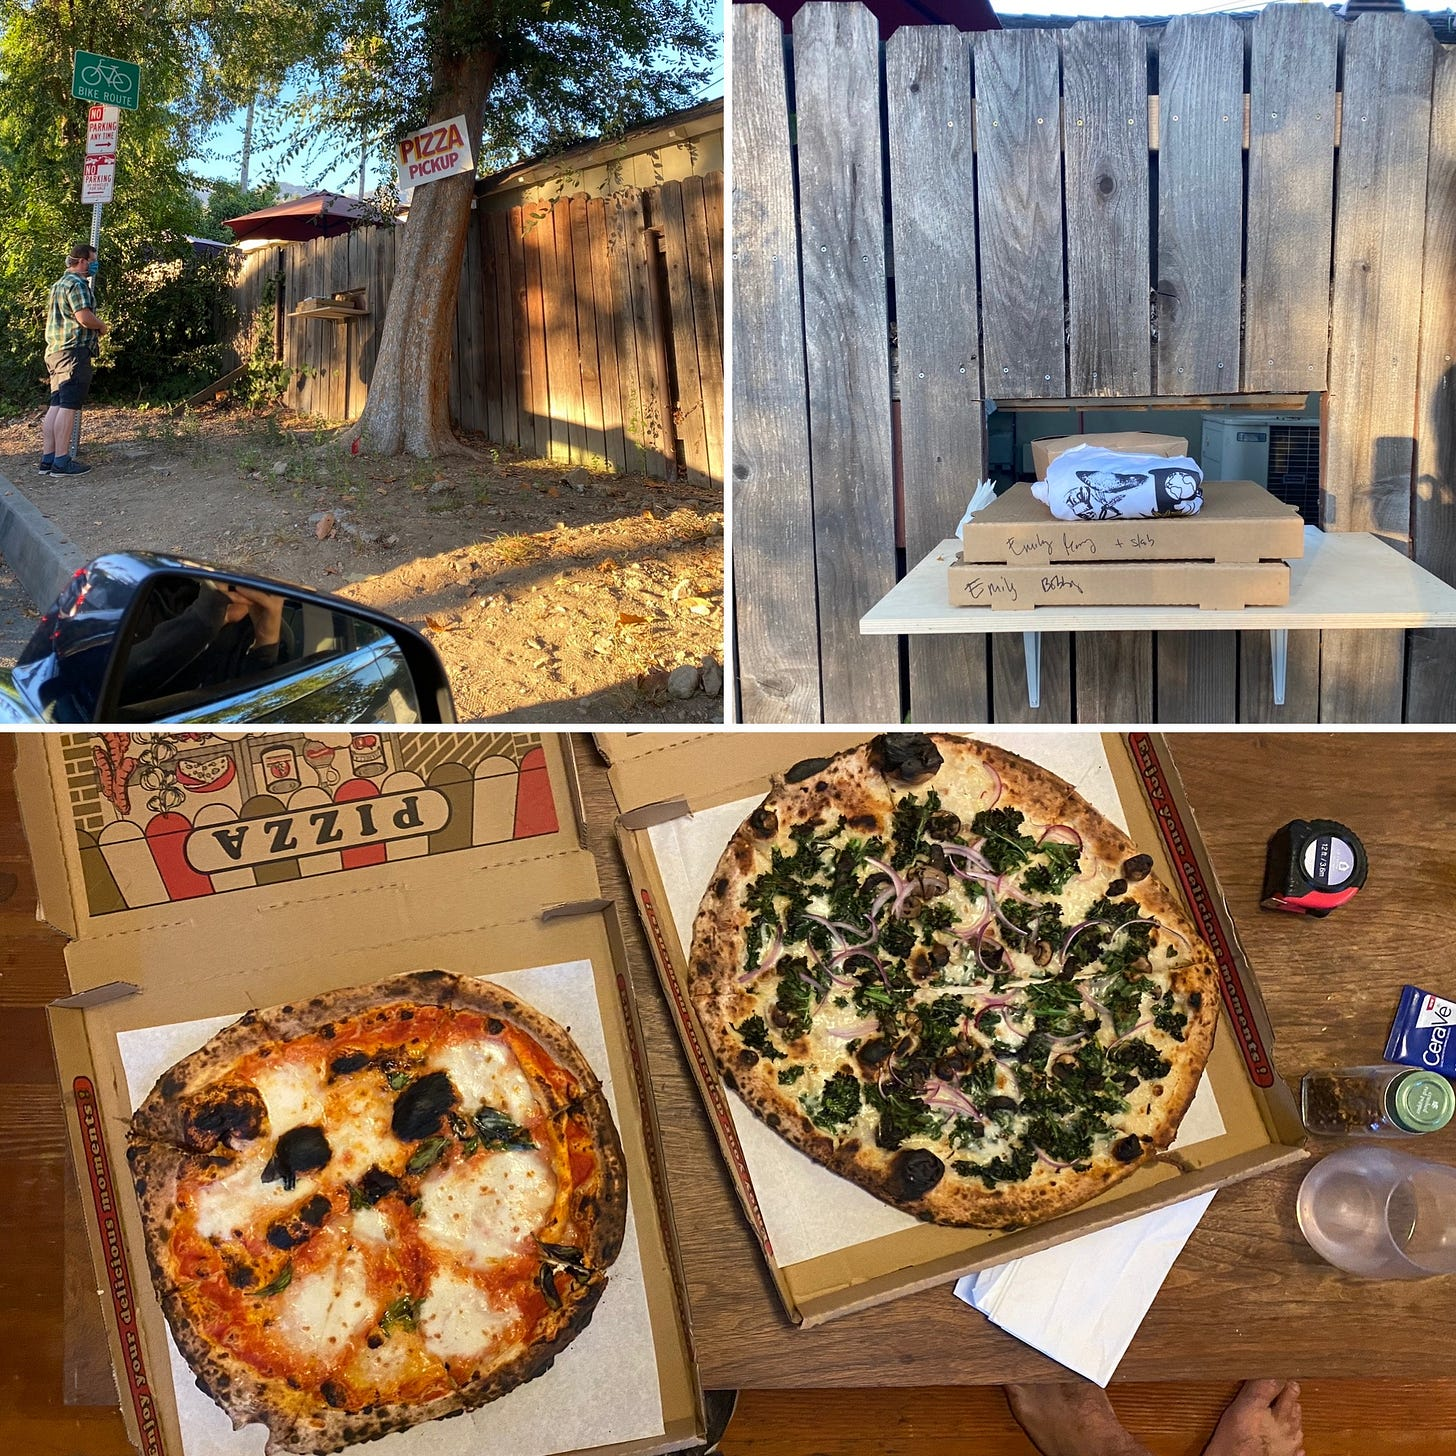 The Side Pie pick-up and pizza experience